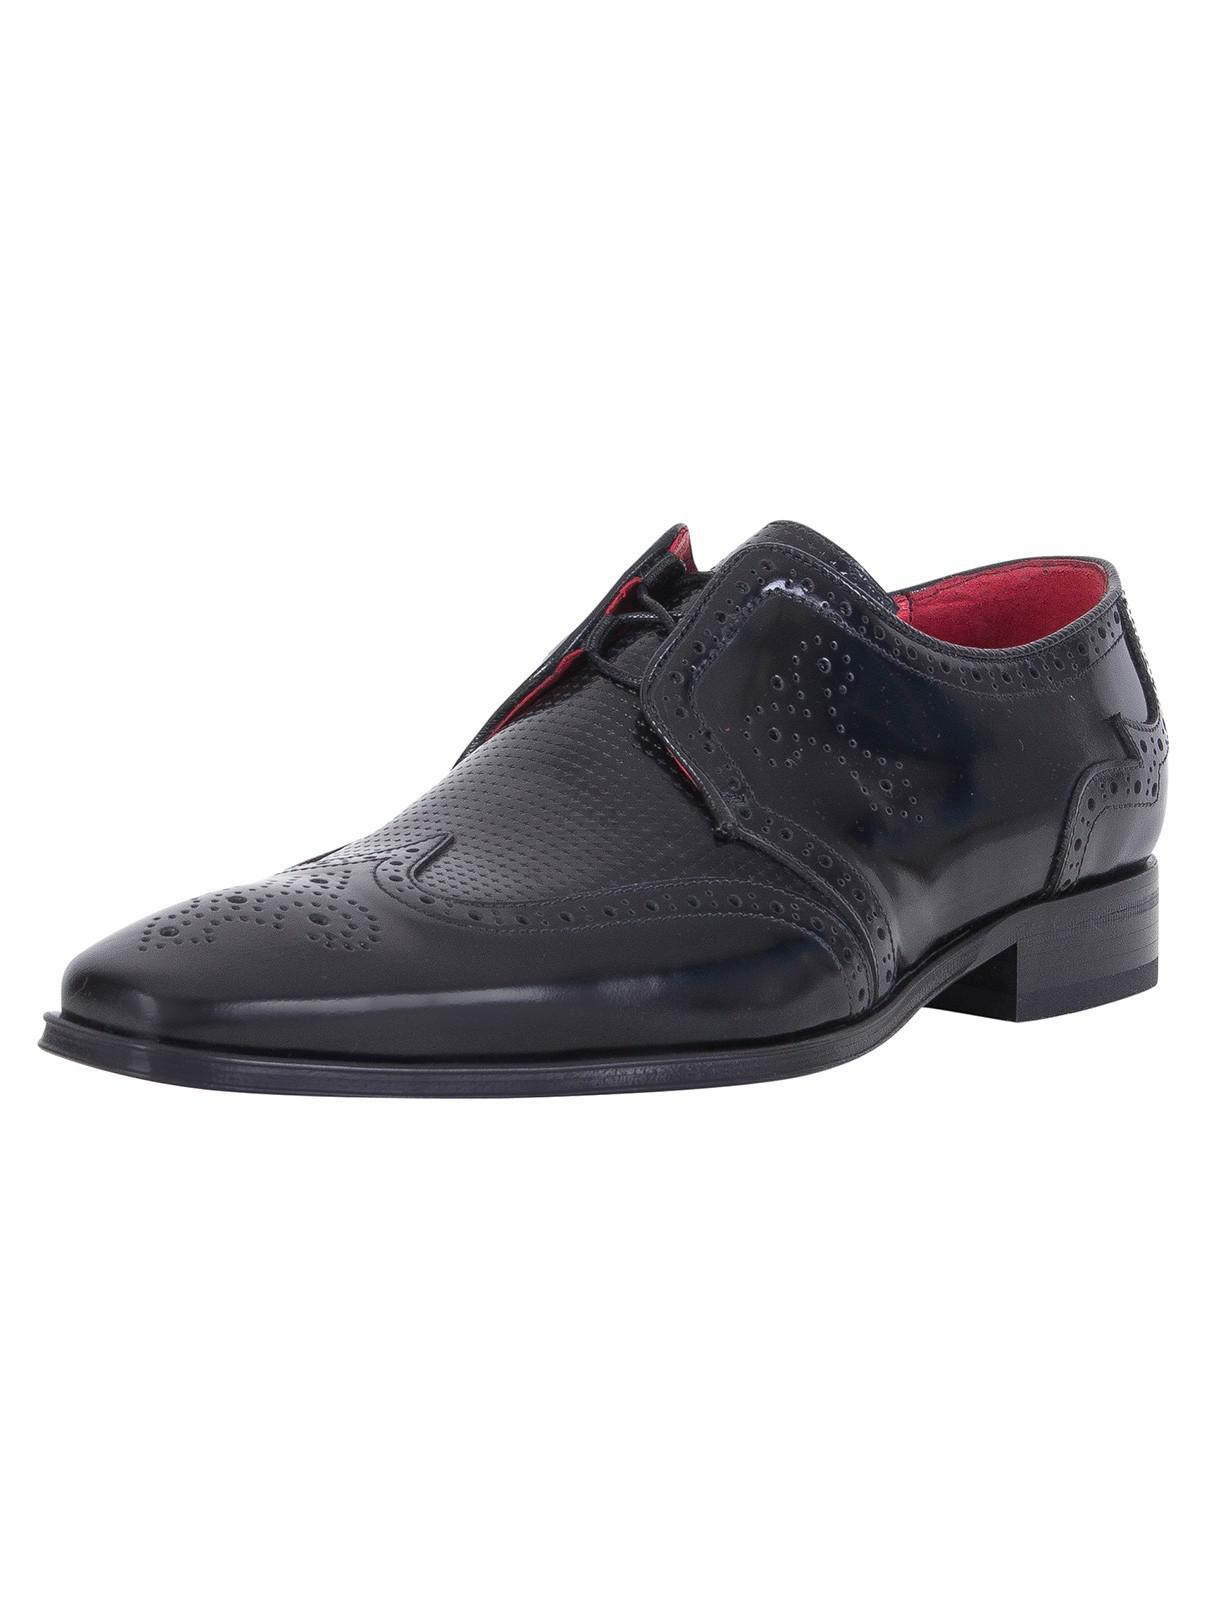 445b9ecb4825 Jeffery West College Black Polished Shoes in Black for Men - Lyst